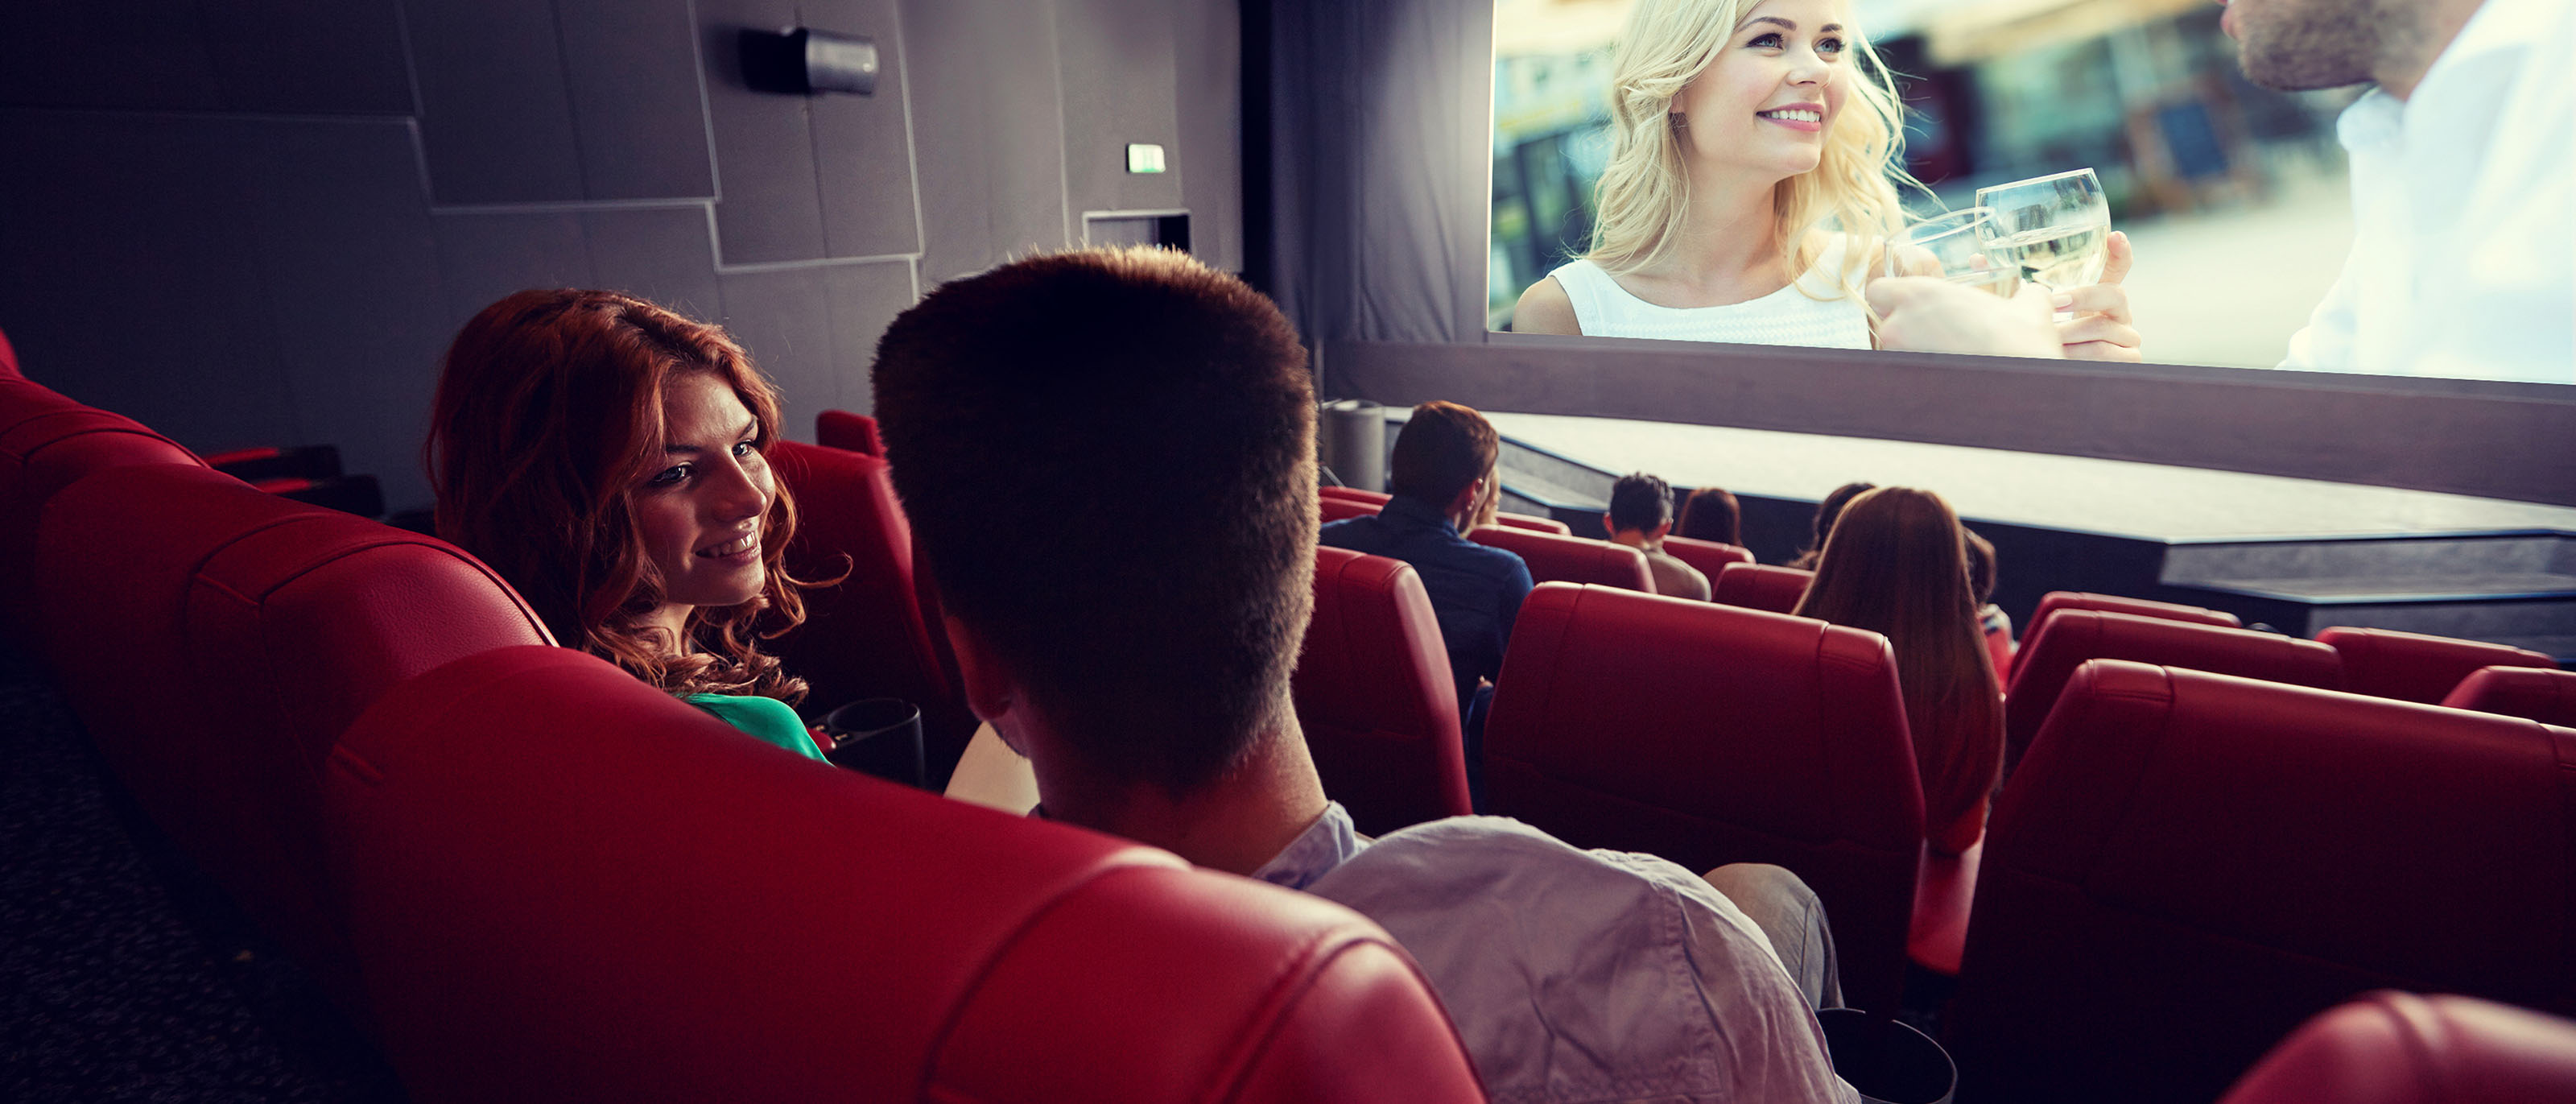 Case Study - US based movie theater